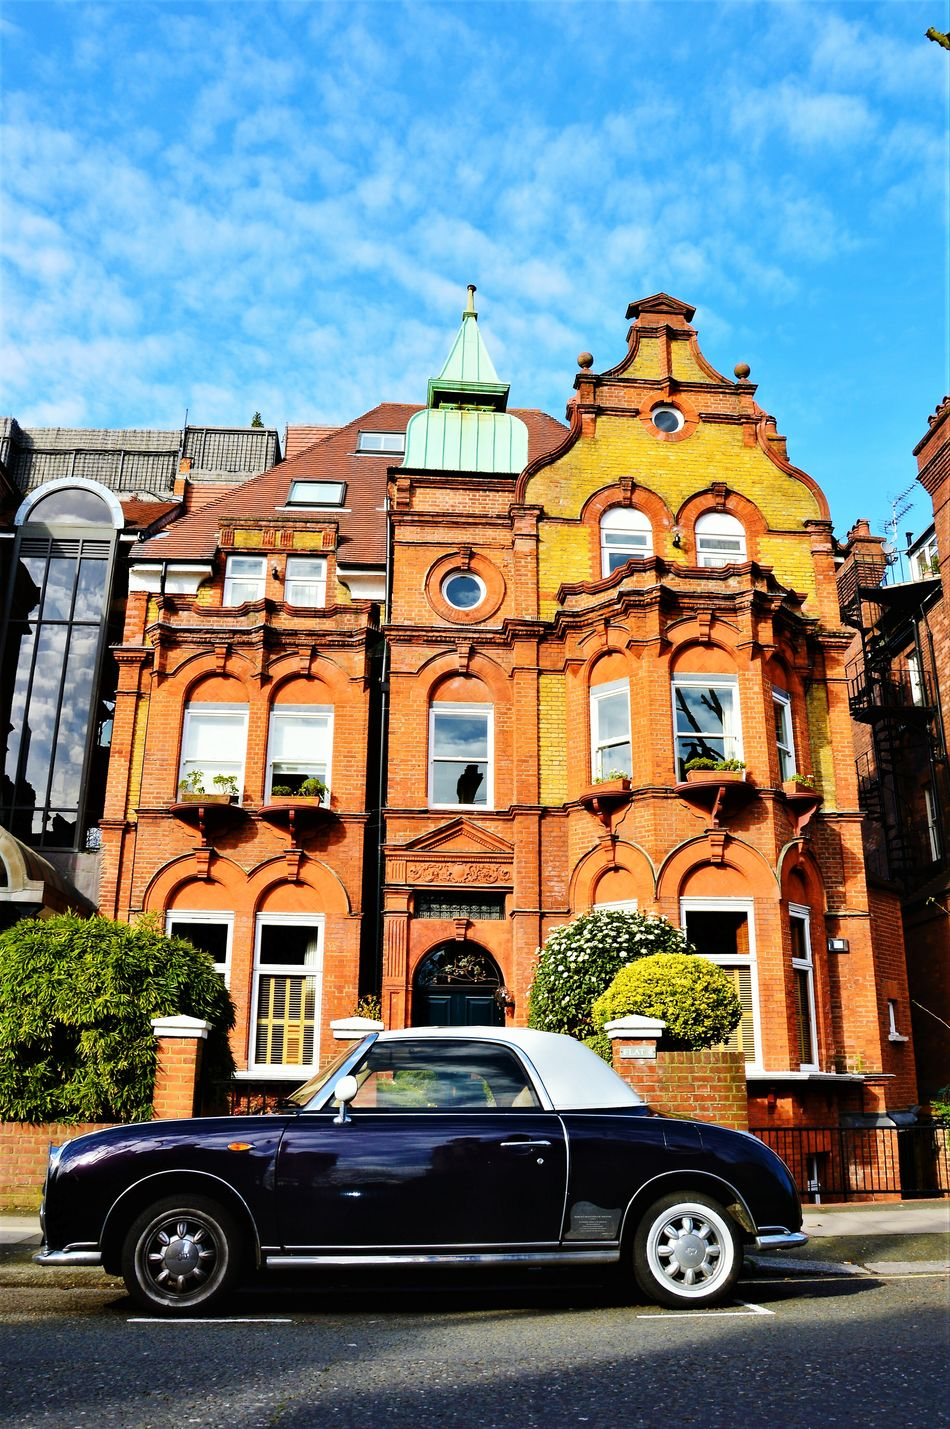 Architecture City Sky Building Exterior Built Structure No People LONDON❤ London Londonthroughmycam London_only Londonlife Springtime Spring Swisscottage Englishhome London Streets Londononly Victorian Style Architecture Rolls Royce Car